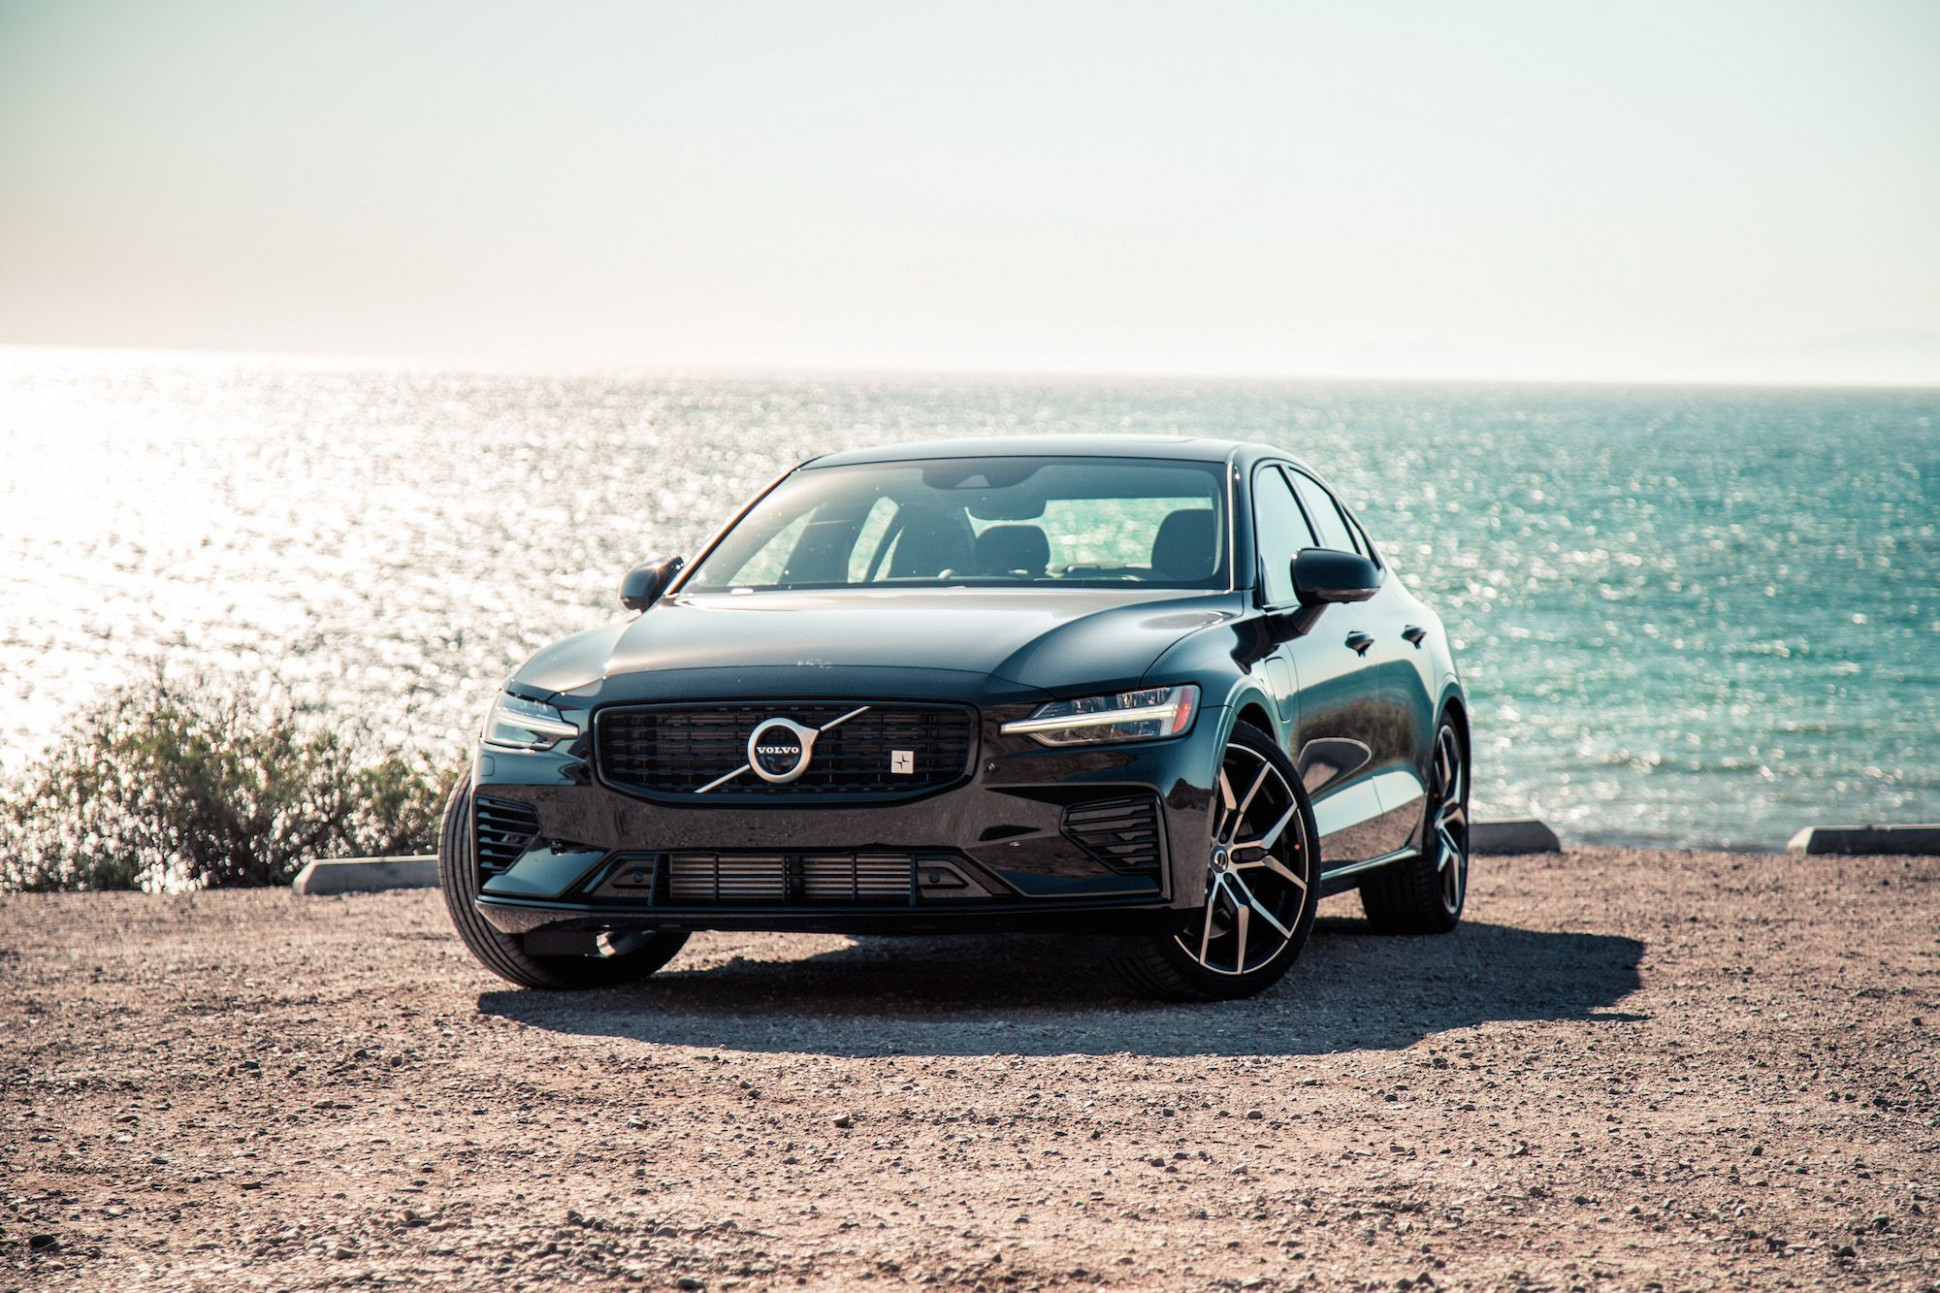 Volvo S12 Polestar 12 First Drive (With images) | Volvo s12 ..